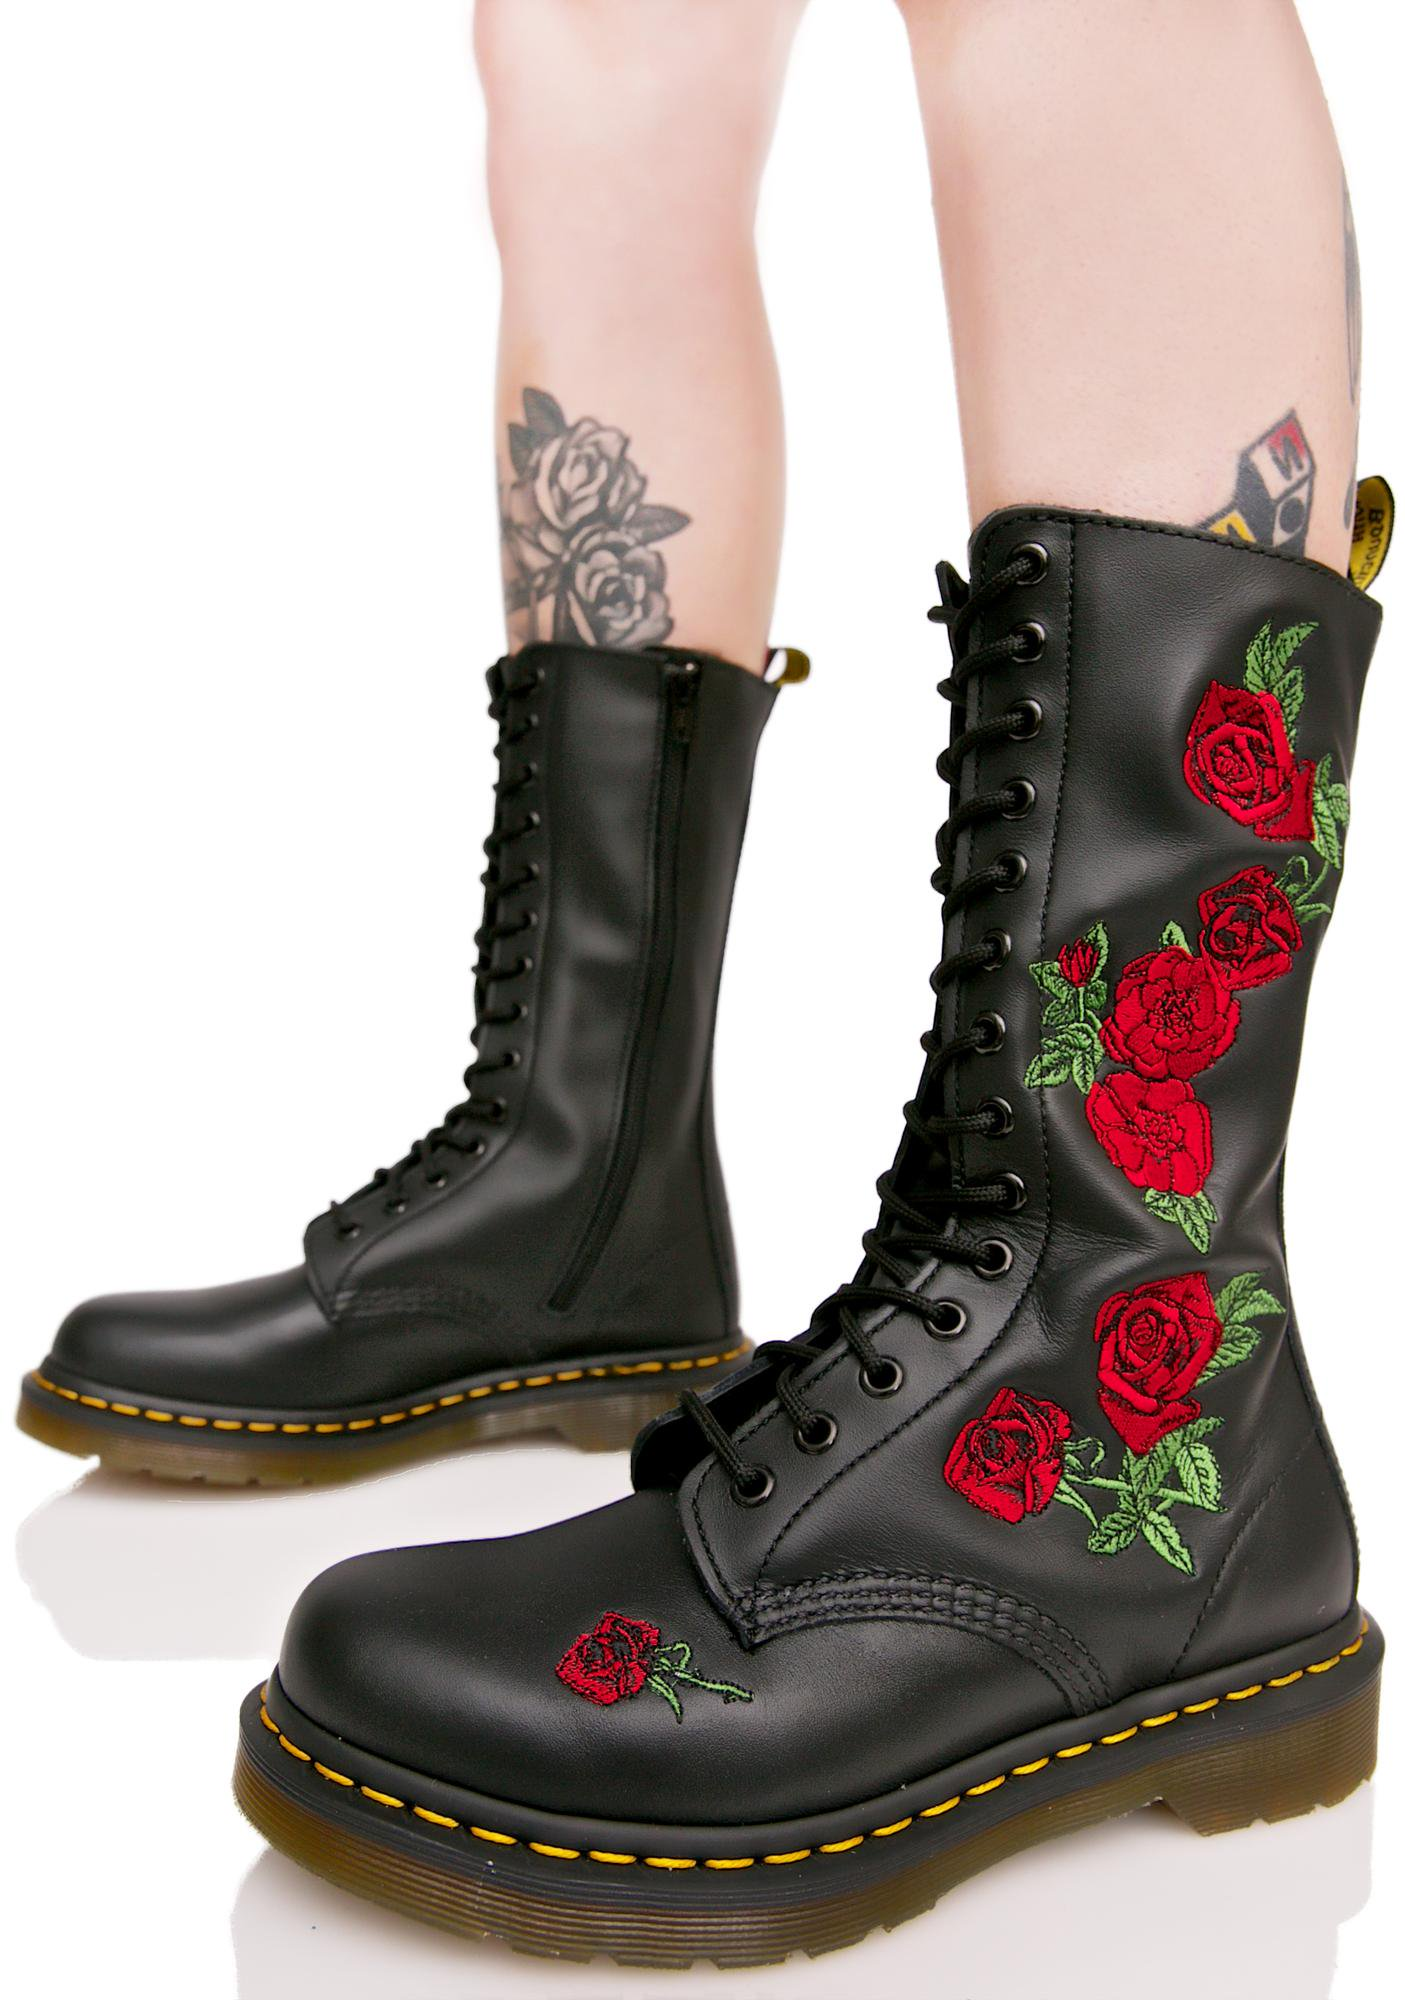 Dr Martens Boots dr. martens vonda embroidered 14 eye boots HXULGNG